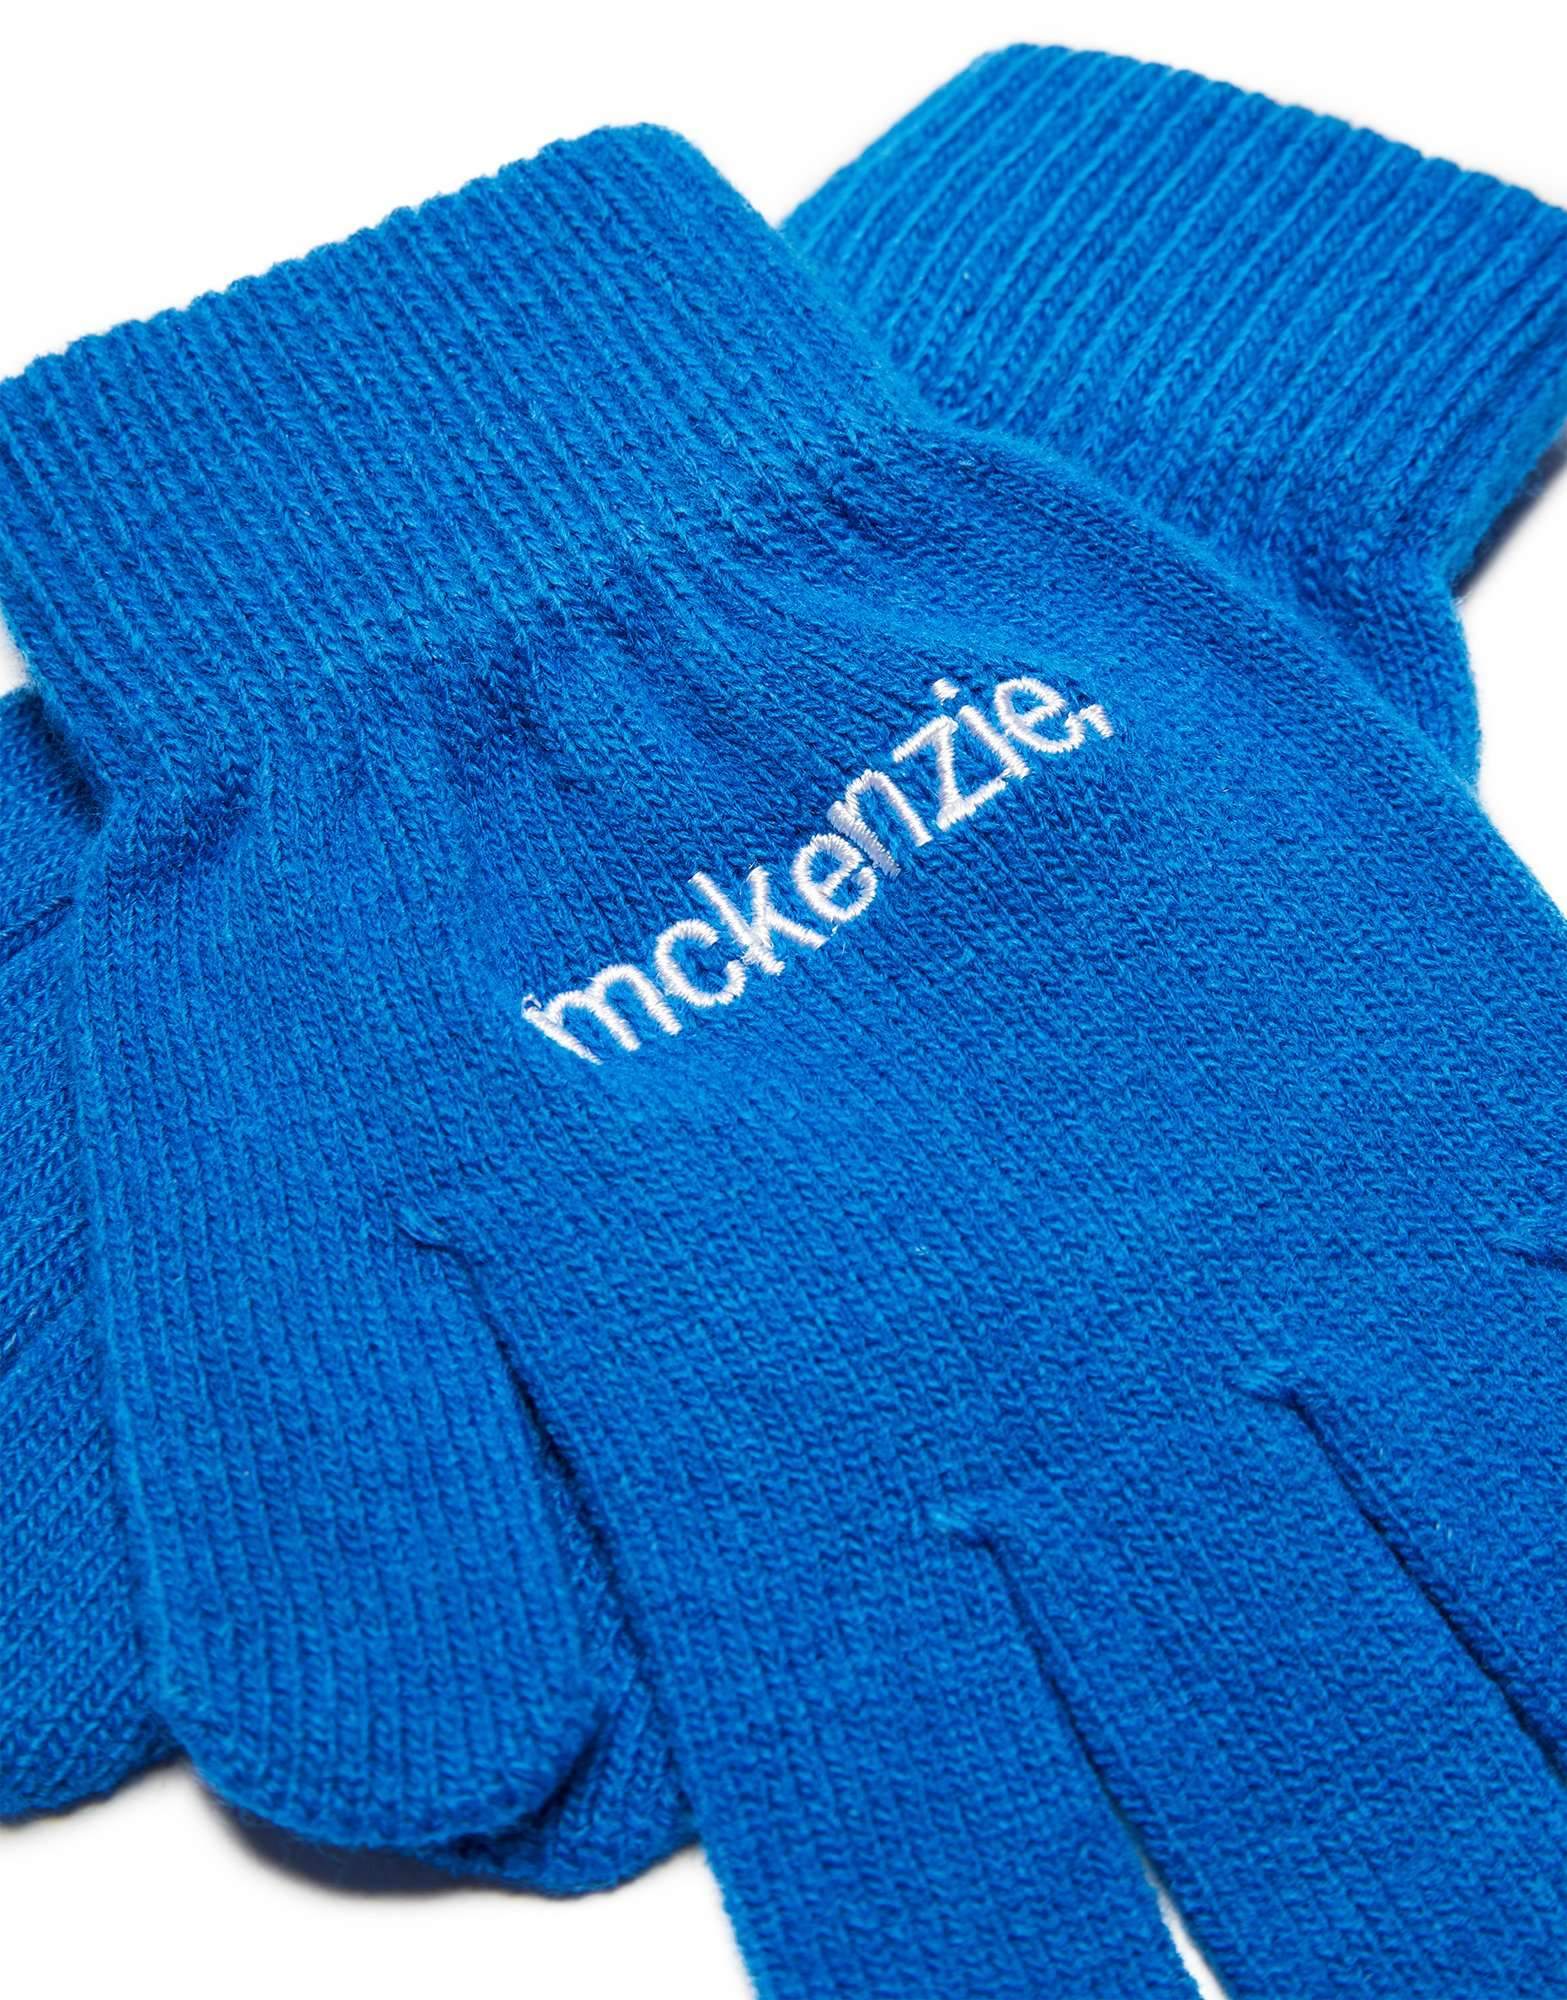 McKenzie Alonzo Gloves